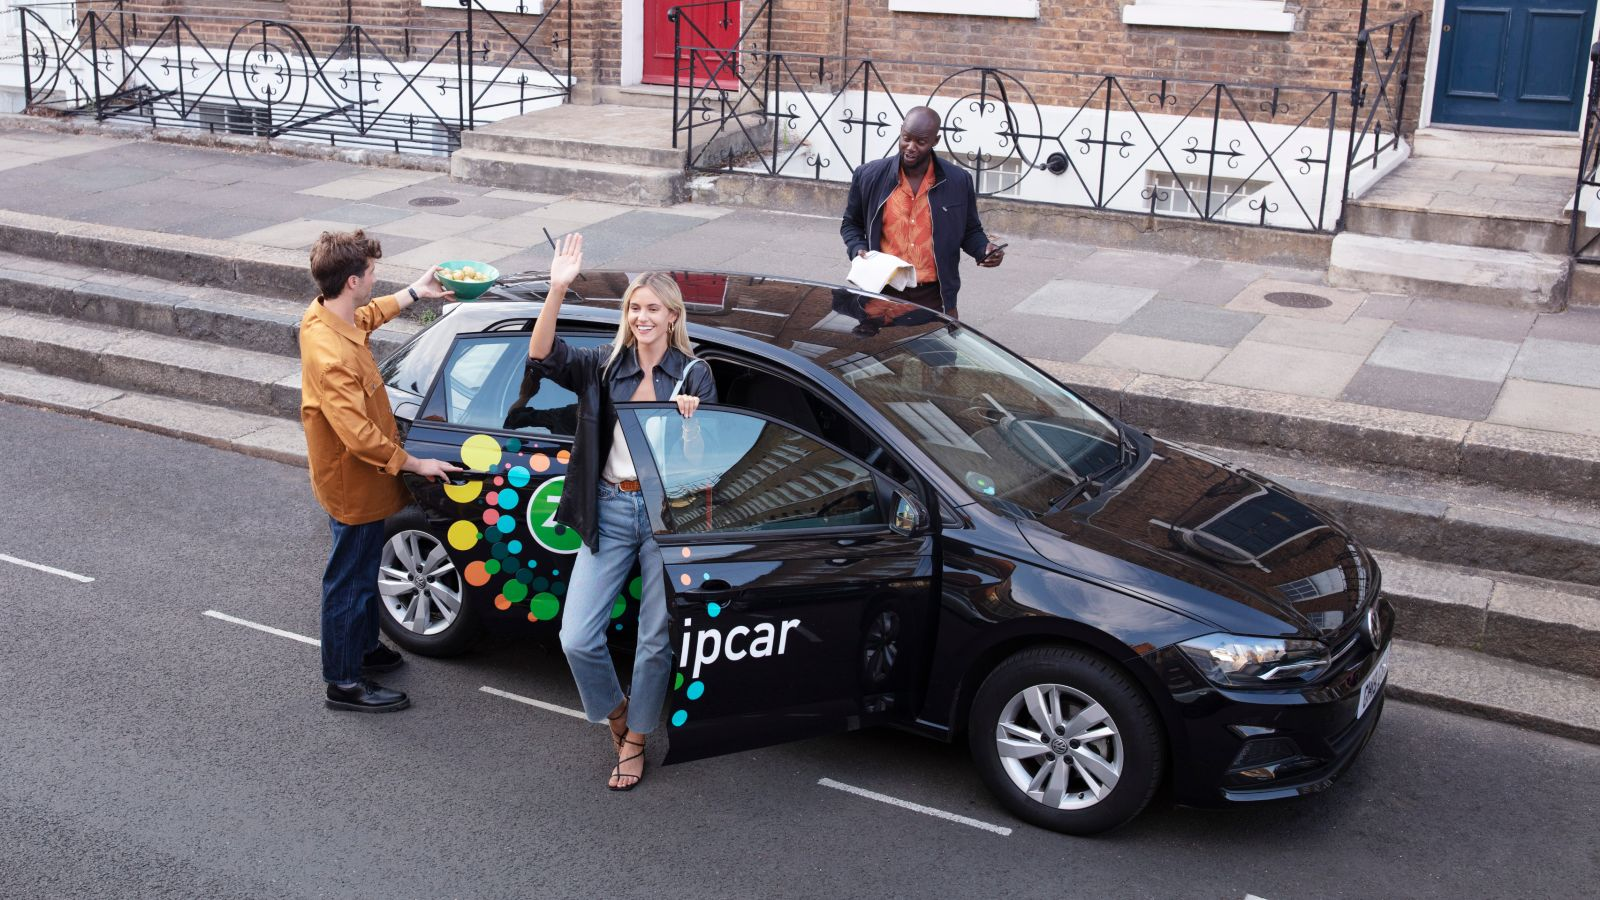 get together using a zipcar